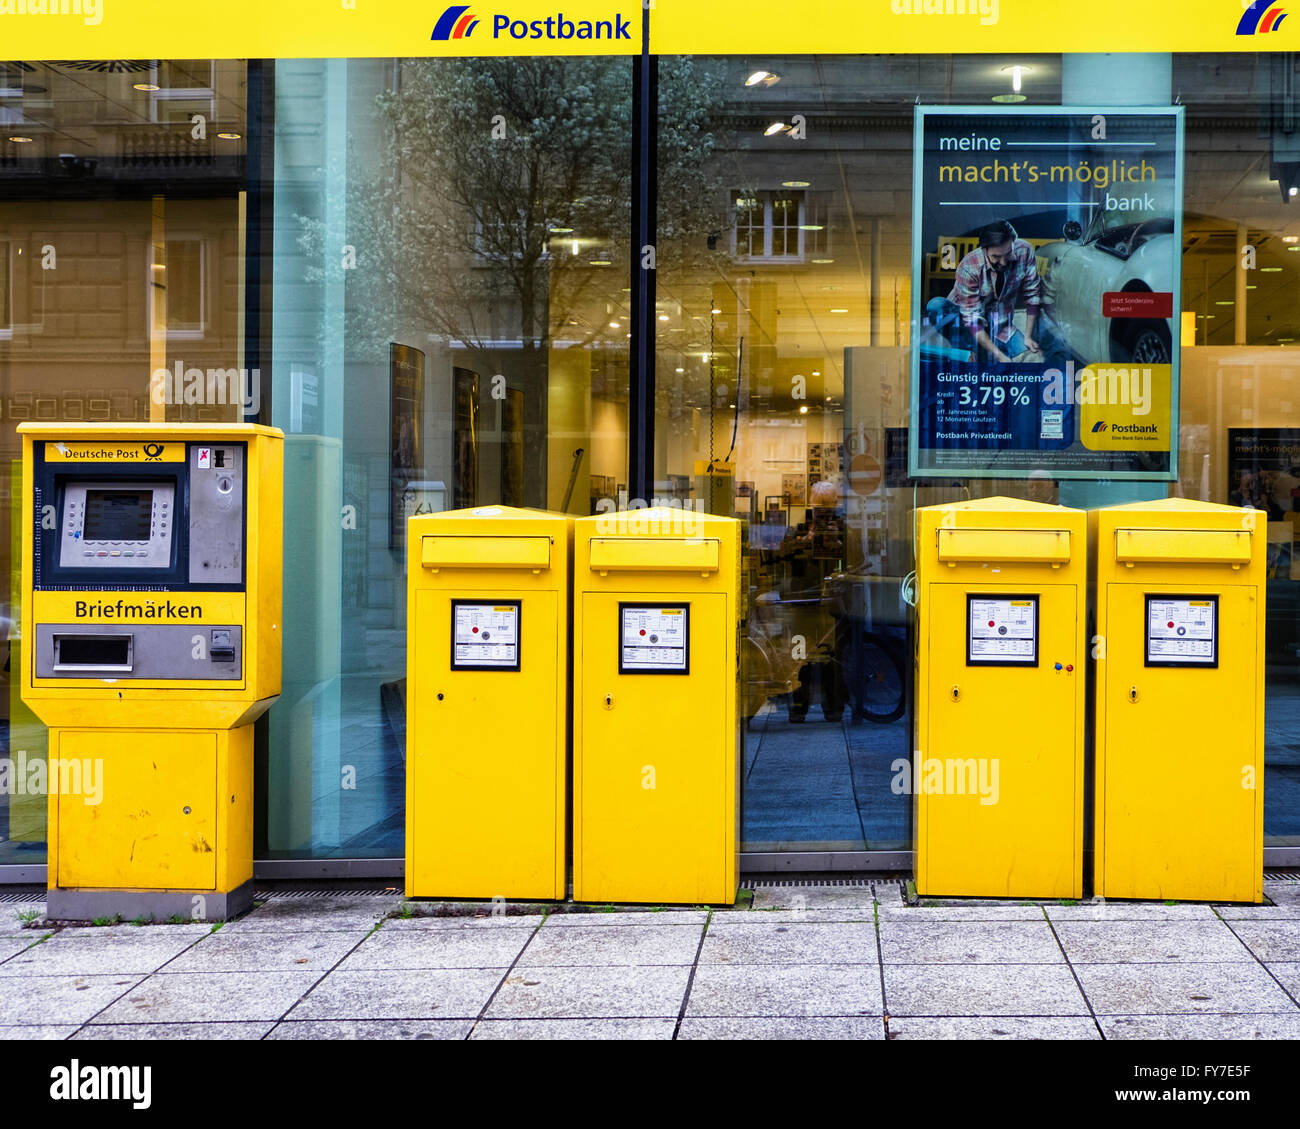 Office Günstig Stuttgart Postbank Post Office With Yellow Stamp Vending Machines